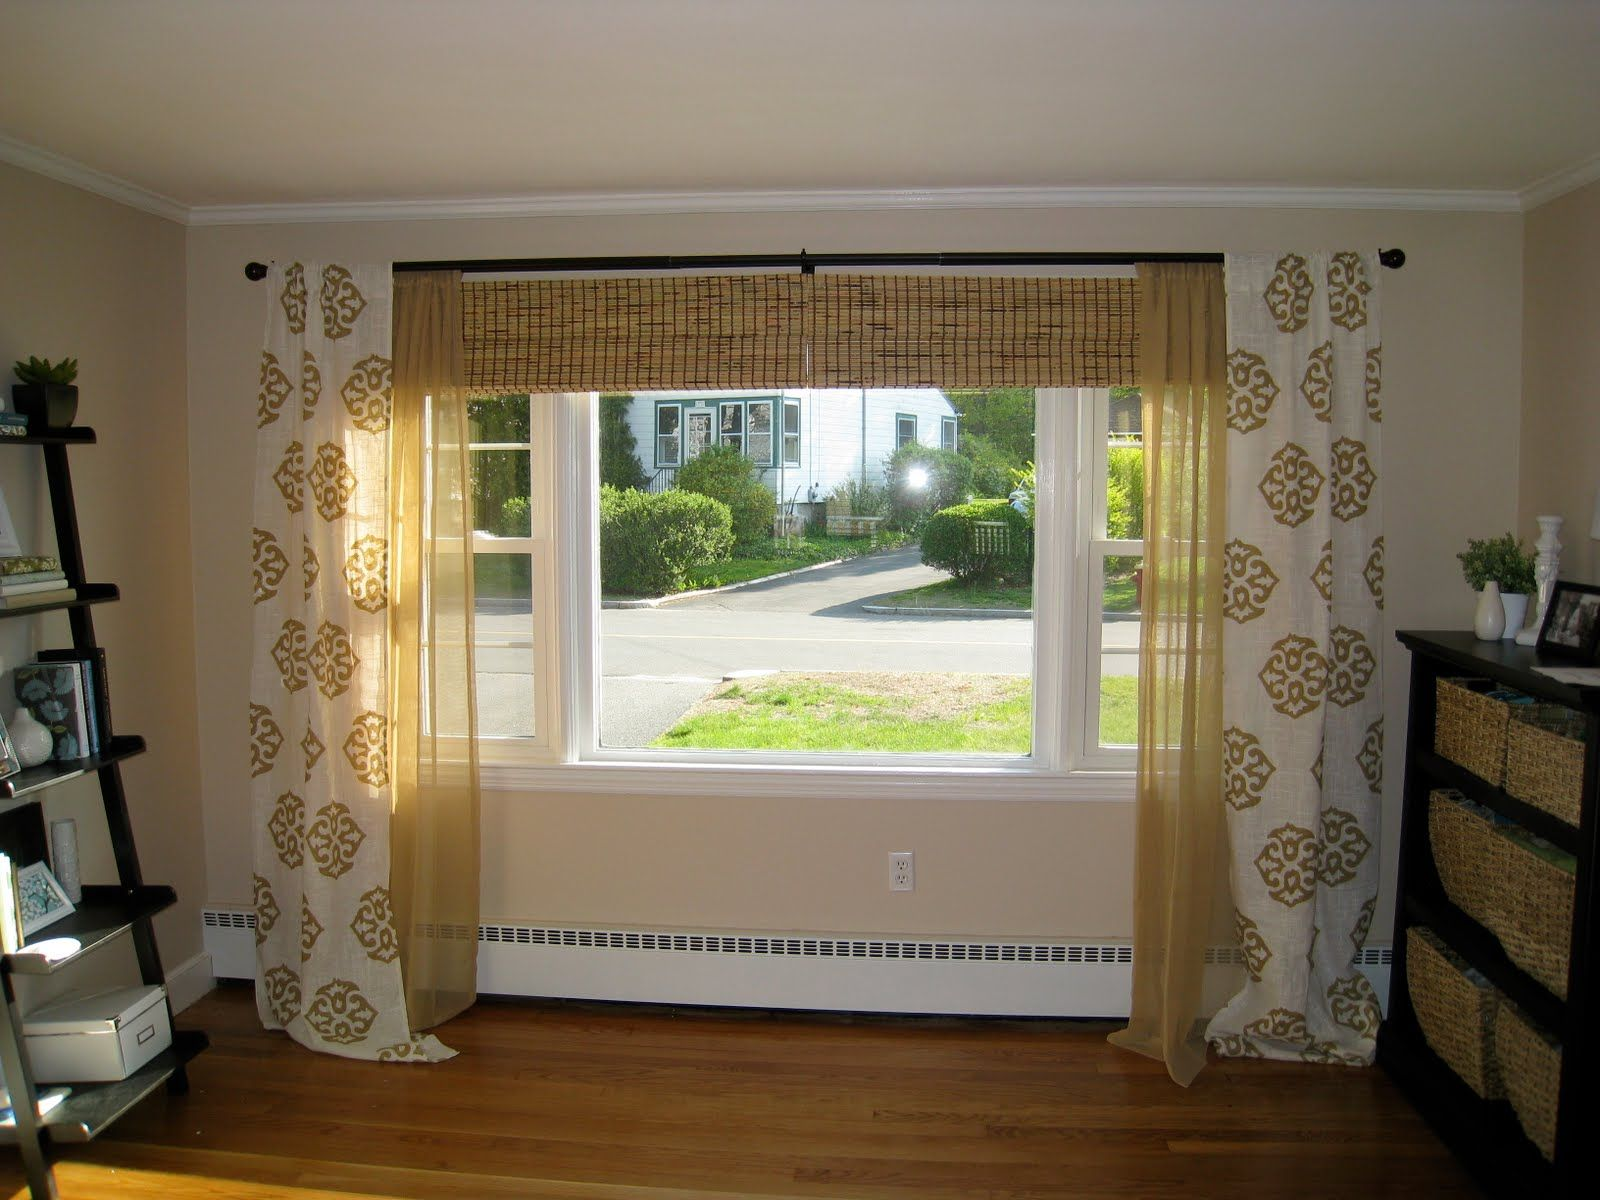 unbelievable popular pict of concept curtain ideas simple treatment design room living wonderful for window tfast and